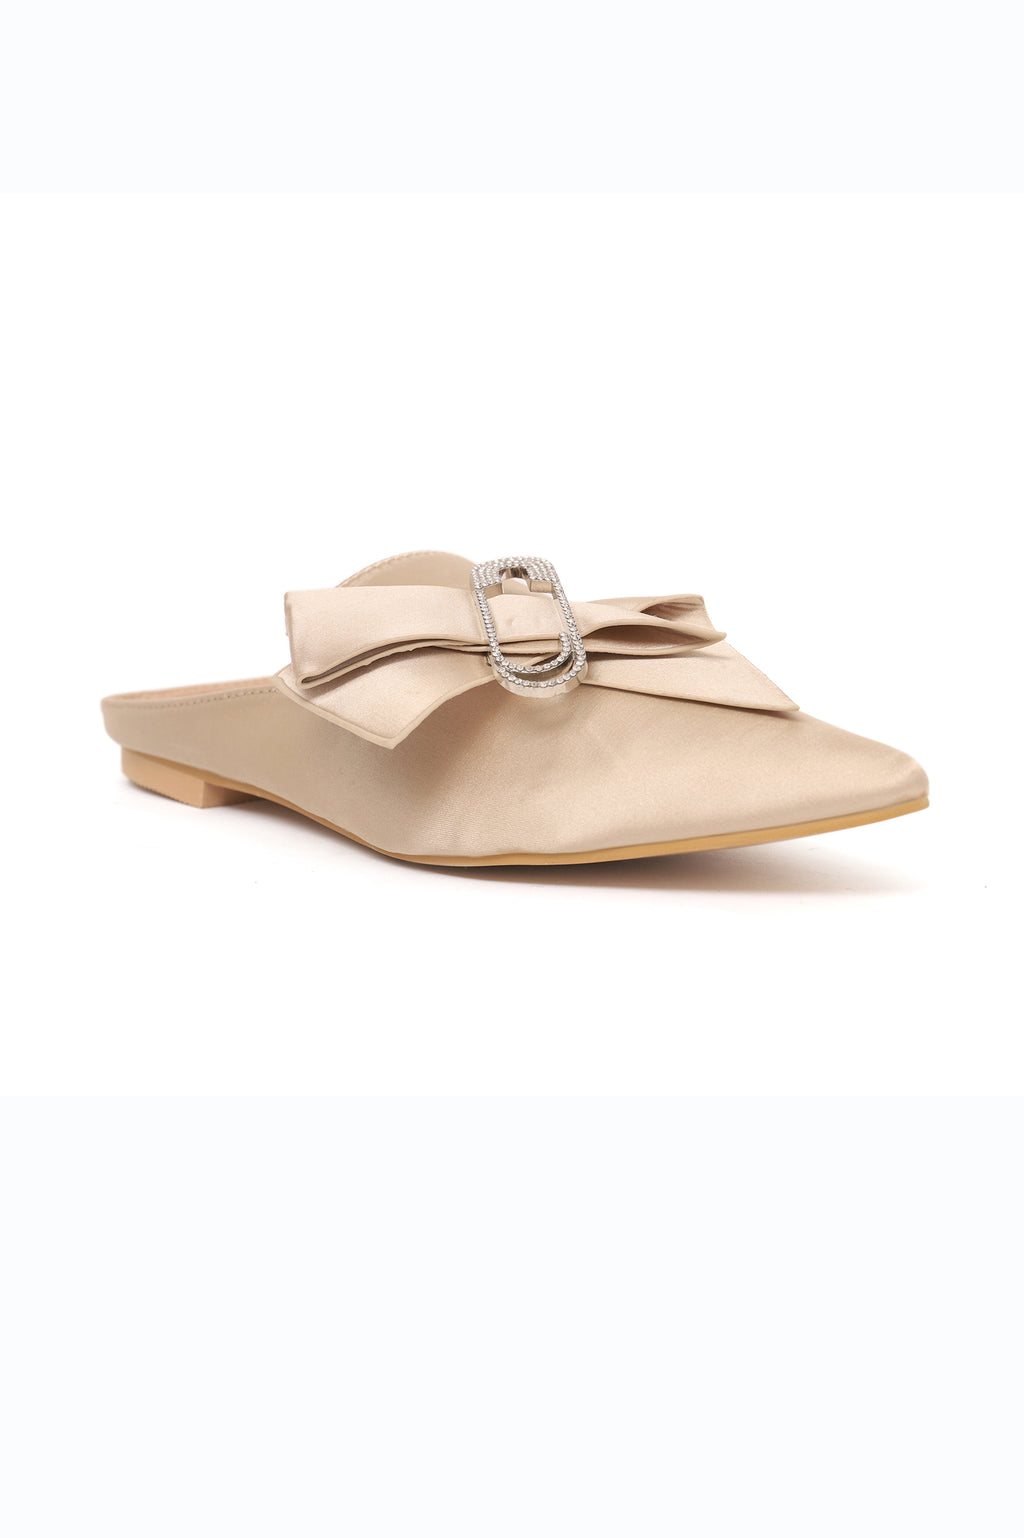 BLING BOW MULES-BEIGE